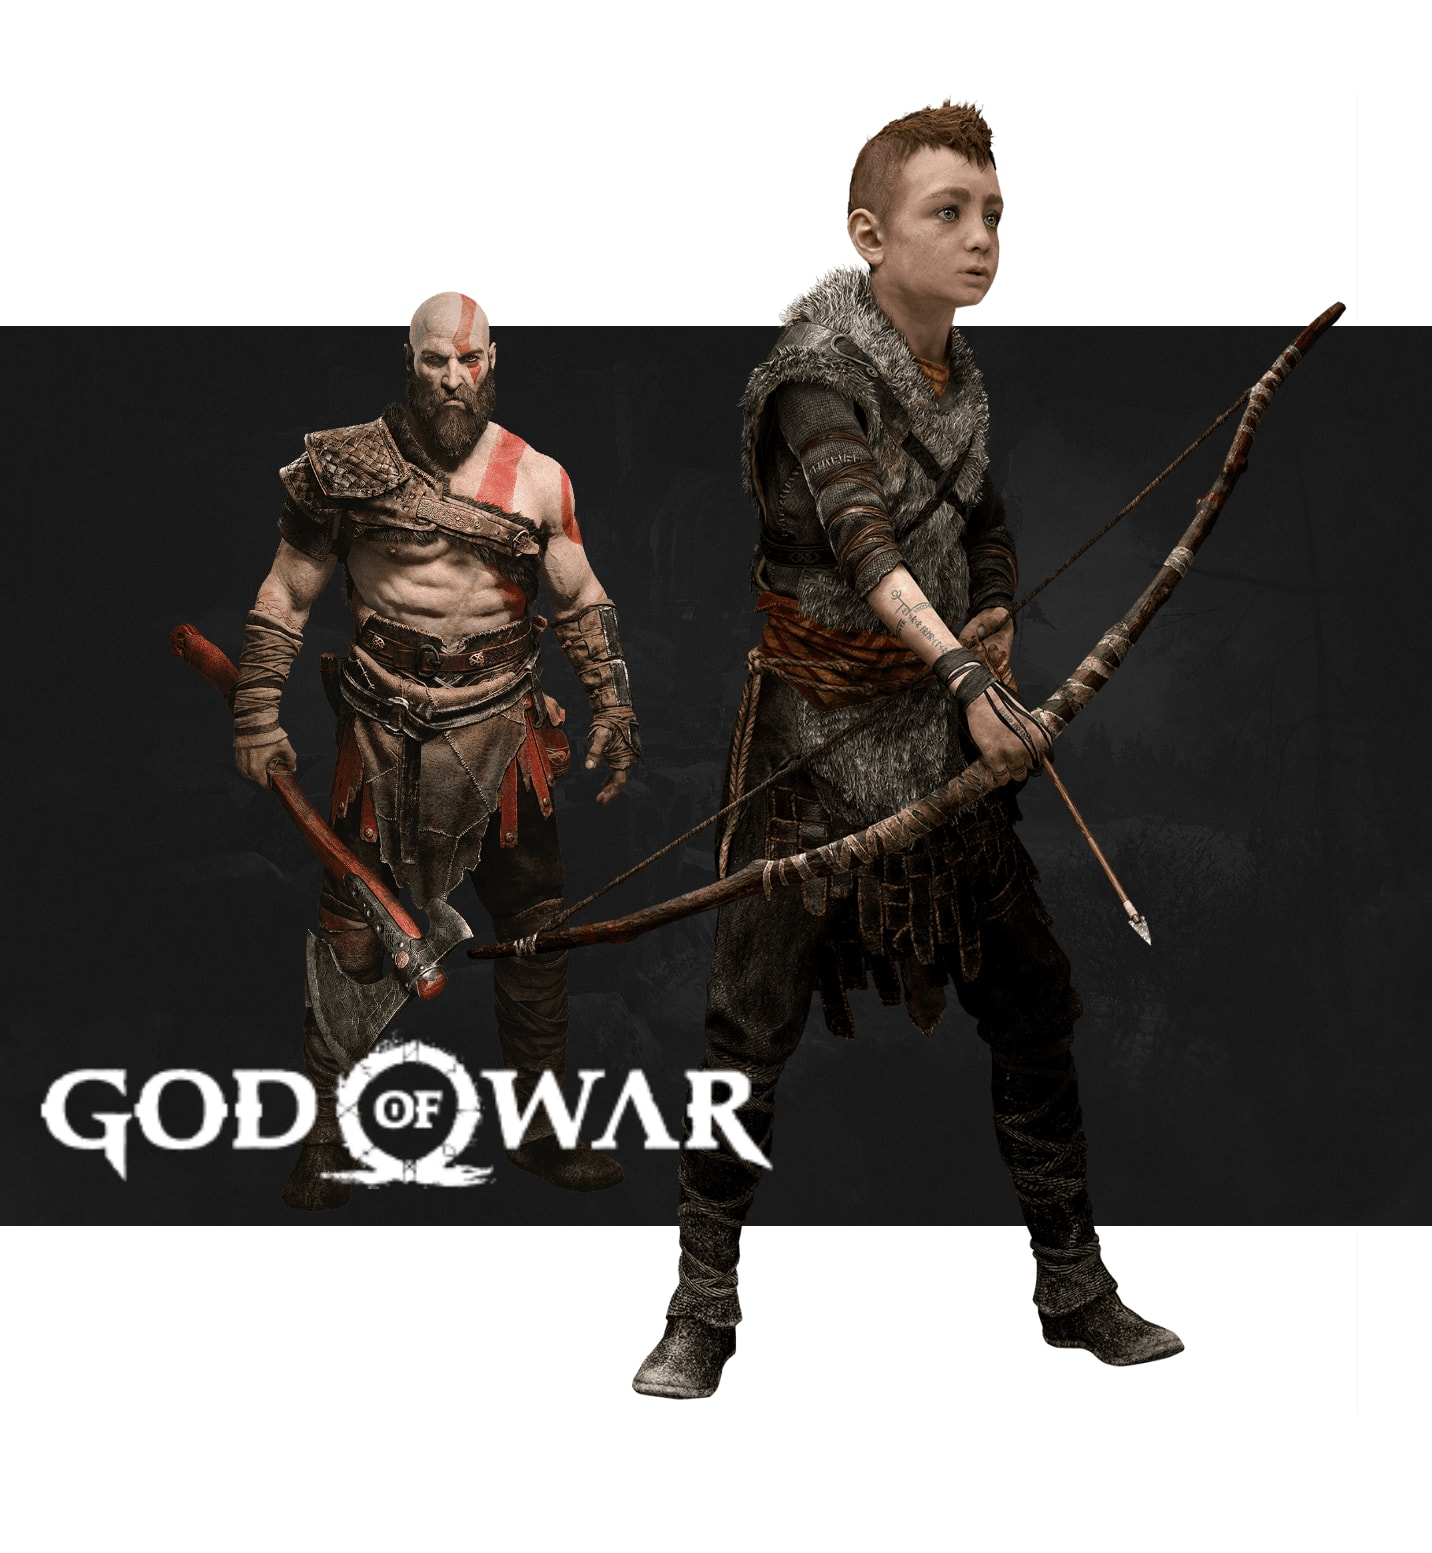 God of War - Single player games